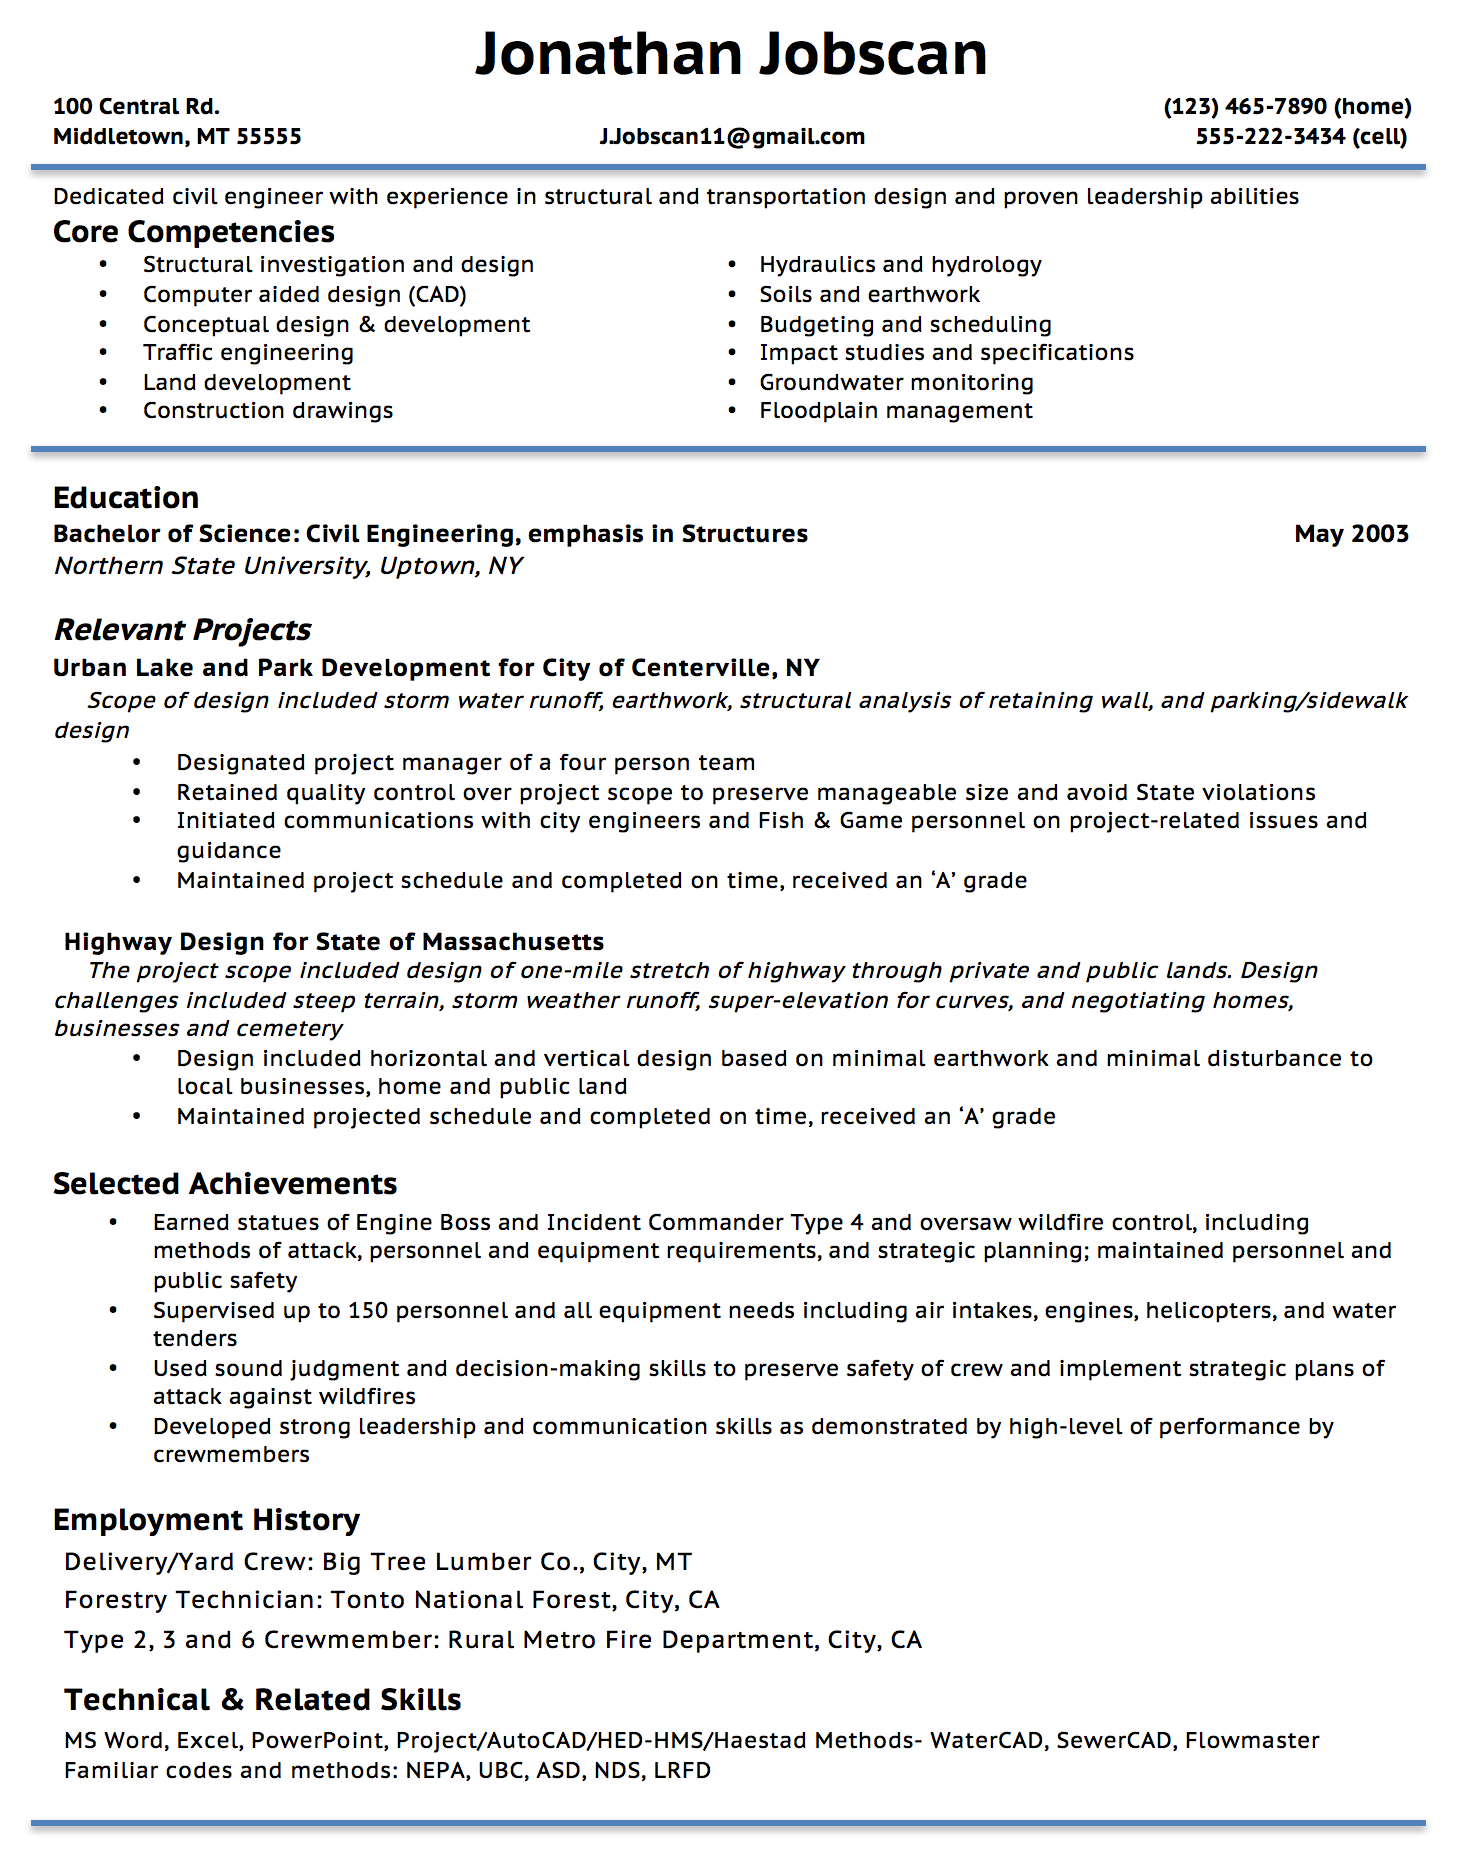 Opposenewapstandardsus  Wonderful Resume Writing Guide  Jobscan With Great Example Of A Functional Resume Format With Amusing Resume Objective Example Also Online Resume In Addition Good Objective For Resume And Basic Resume Template As Well As Skills To List On Resume Additionally Resume Writing Tips From Jobscanco With Opposenewapstandardsus  Great Resume Writing Guide  Jobscan With Amusing Example Of A Functional Resume Format And Wonderful Resume Objective Example Also Online Resume In Addition Good Objective For Resume From Jobscanco